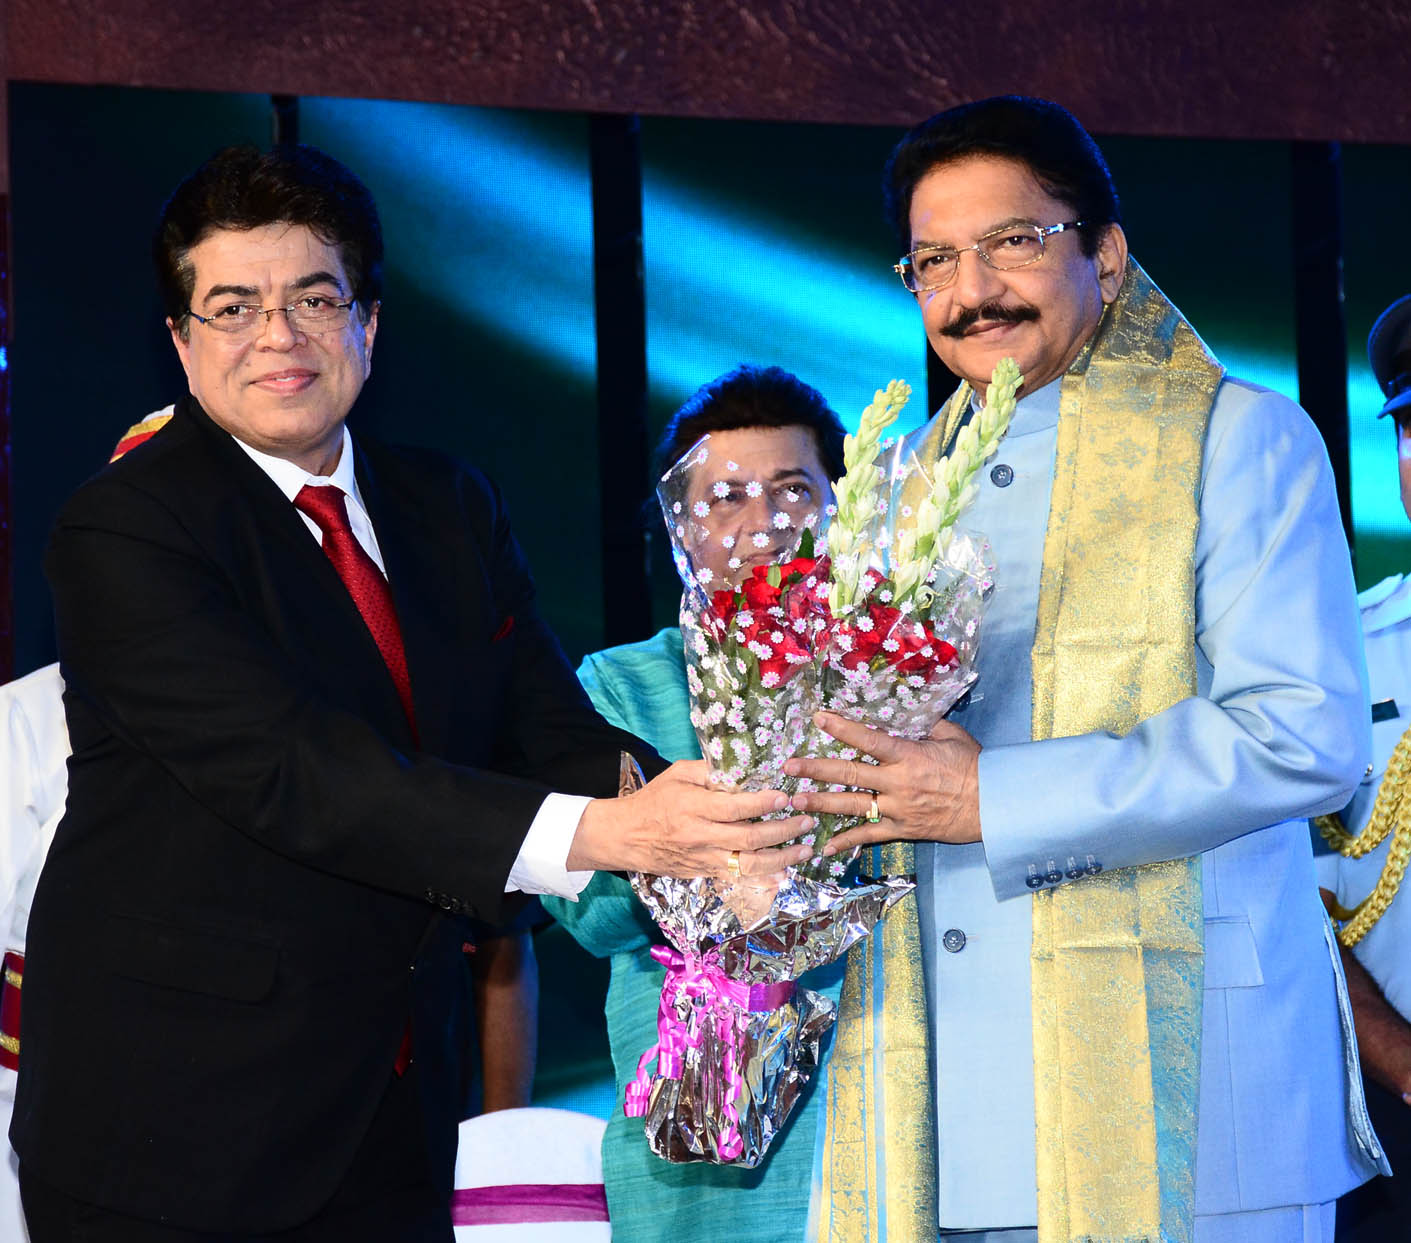 With the Hon'ble Governor of Maharashtra at the DD awards